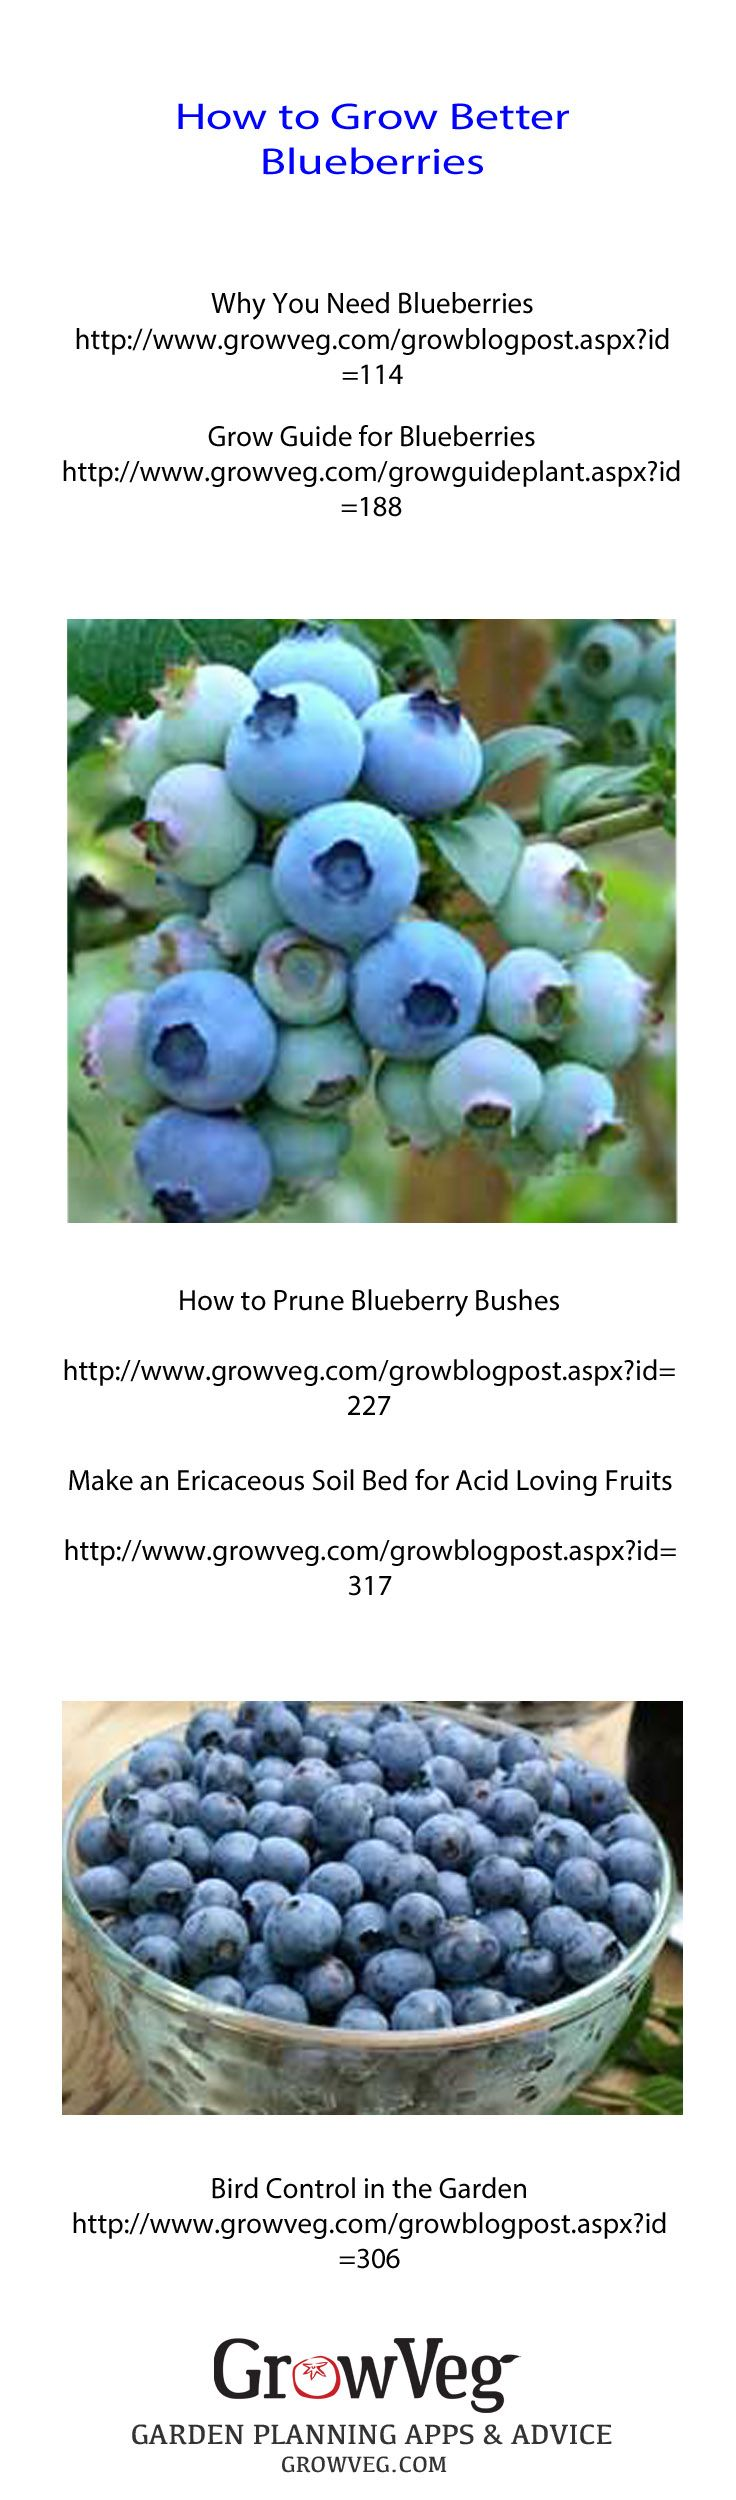 When to prune blueberries  How to get your soil right to stop bird damage and grow heaps more